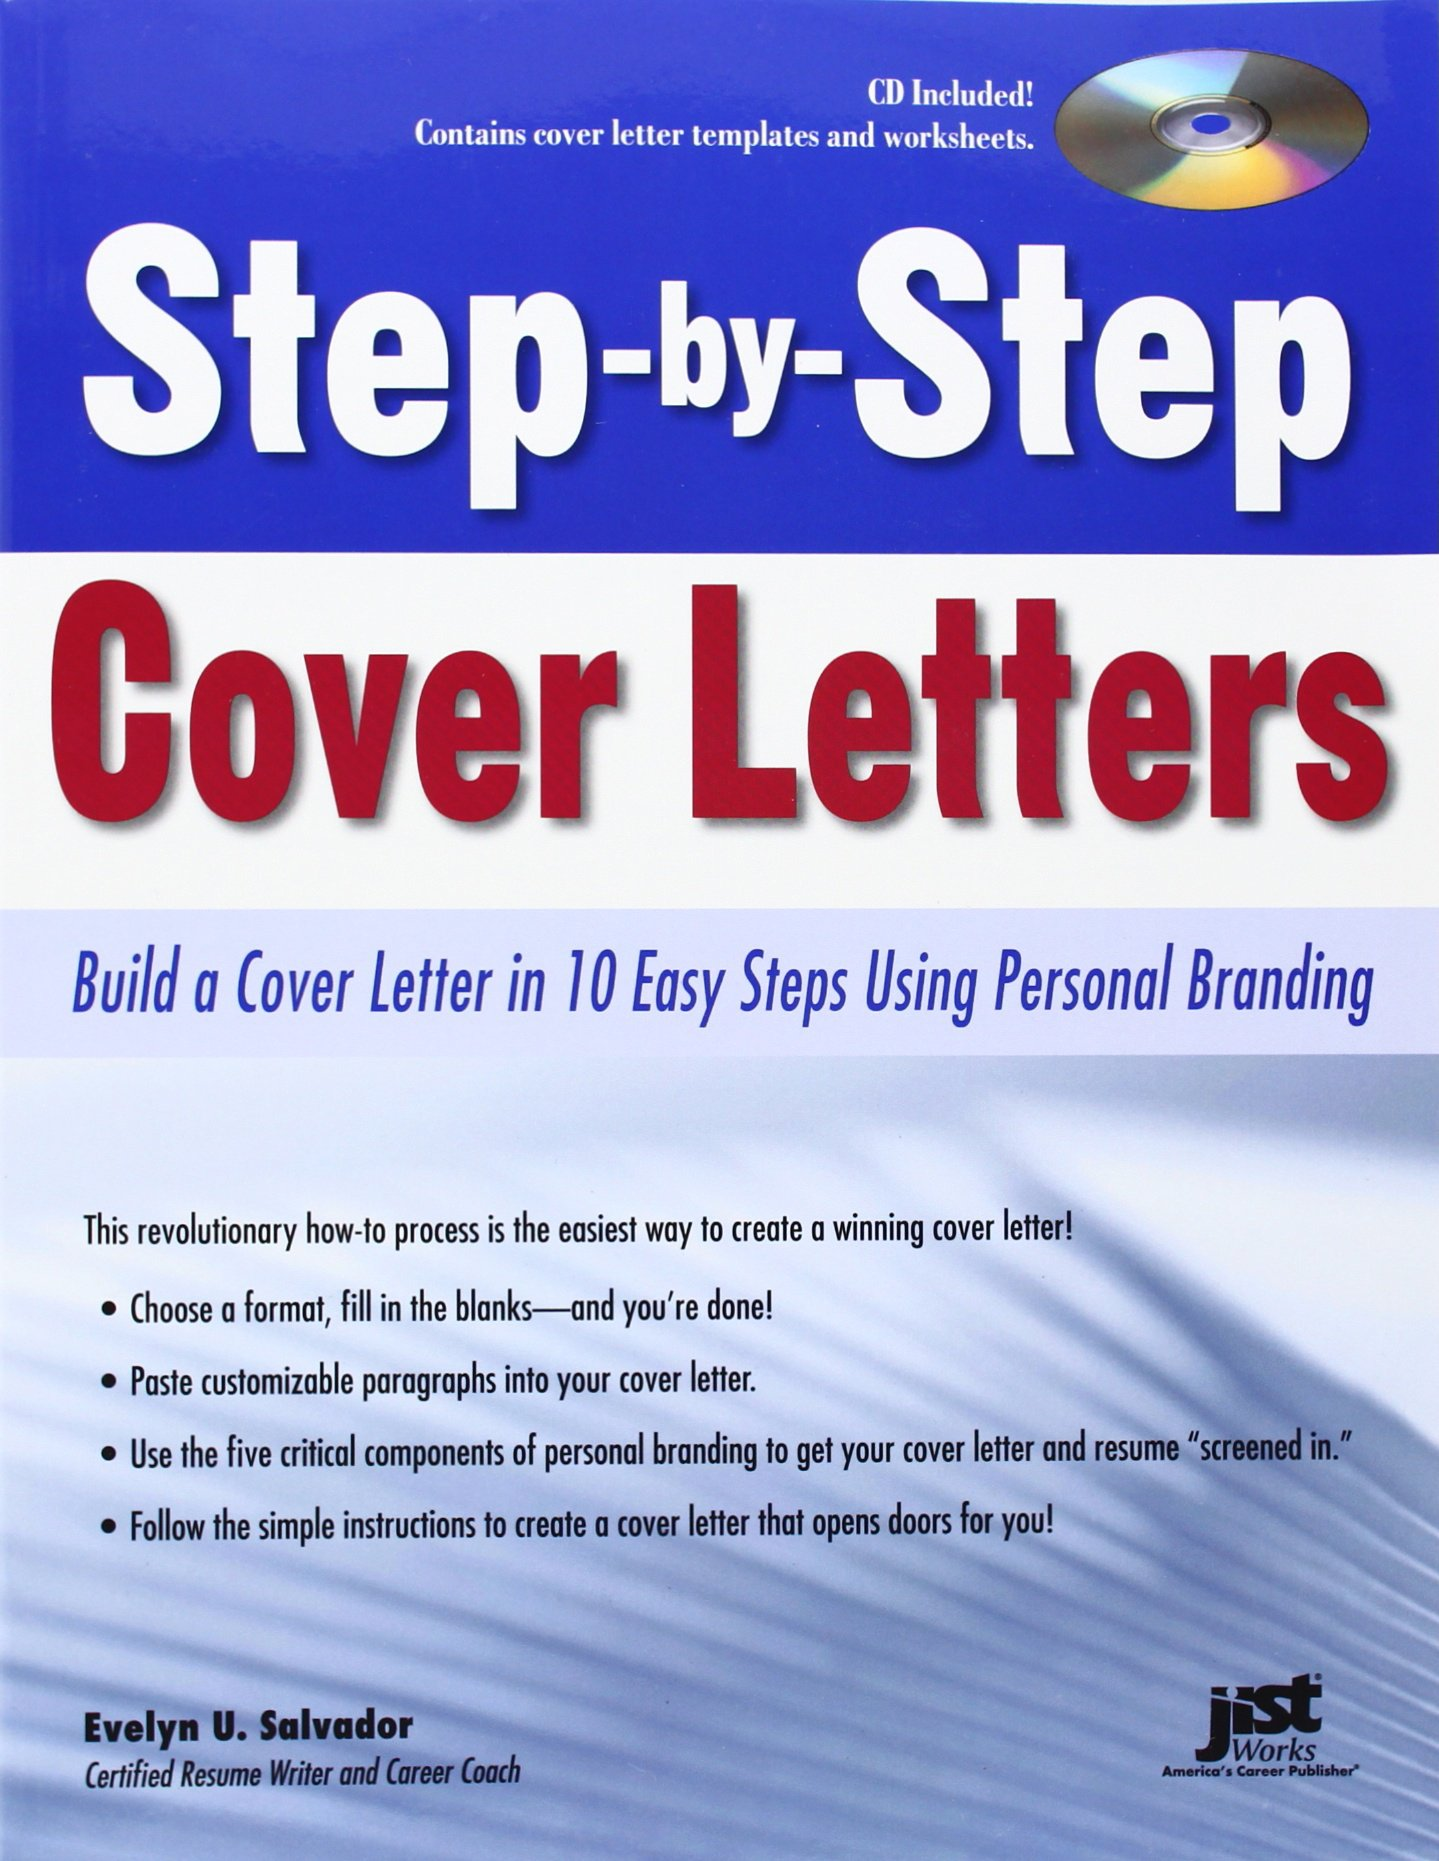 step by step cover letters build a cover letter in 10 easy steps using personal branding evelyn u salvador 9781593577803 amazoncom books. Resume Example. Resume CV Cover Letter